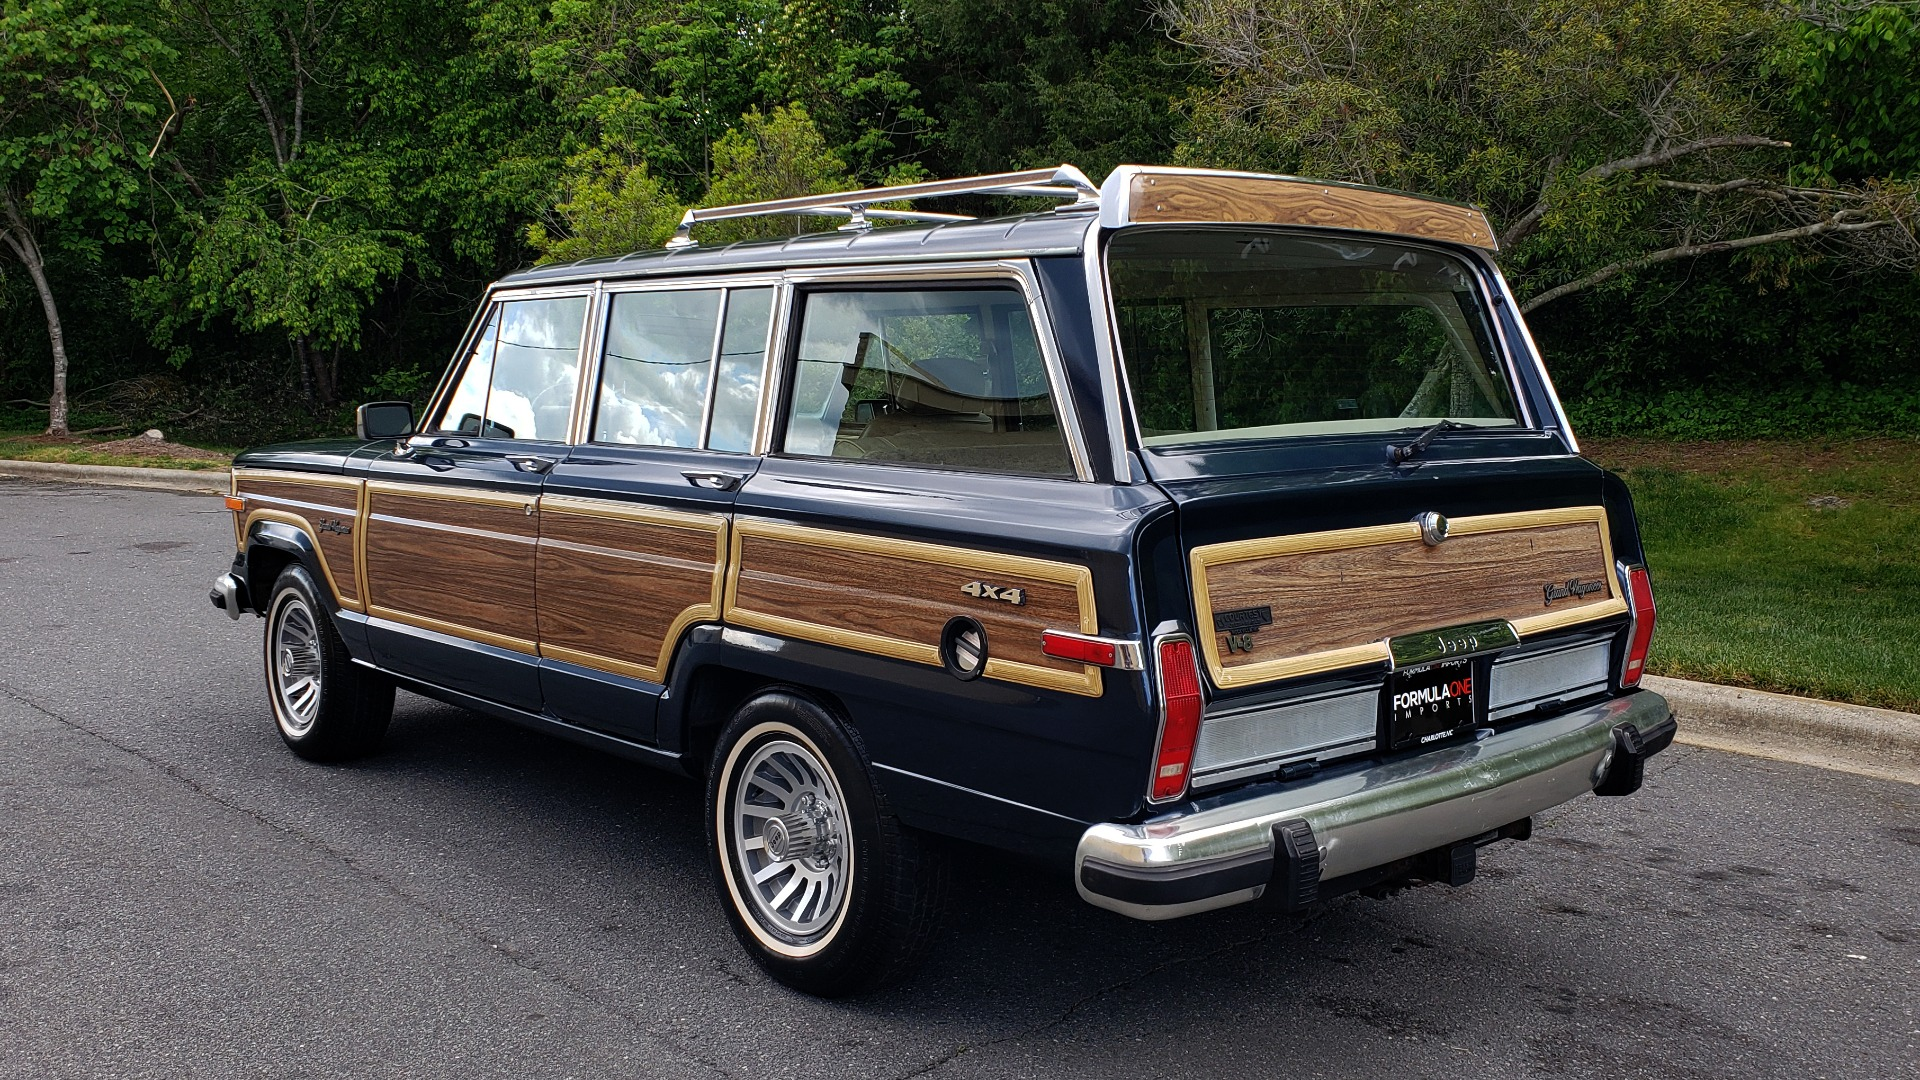 Used 1989 Jeep GRAND WAGONEER 4x4 / 5.9L V8 / 3-SPEED AUTO / PIONEER STEREO for sale Sold at Formula Imports in Charlotte NC 28227 3